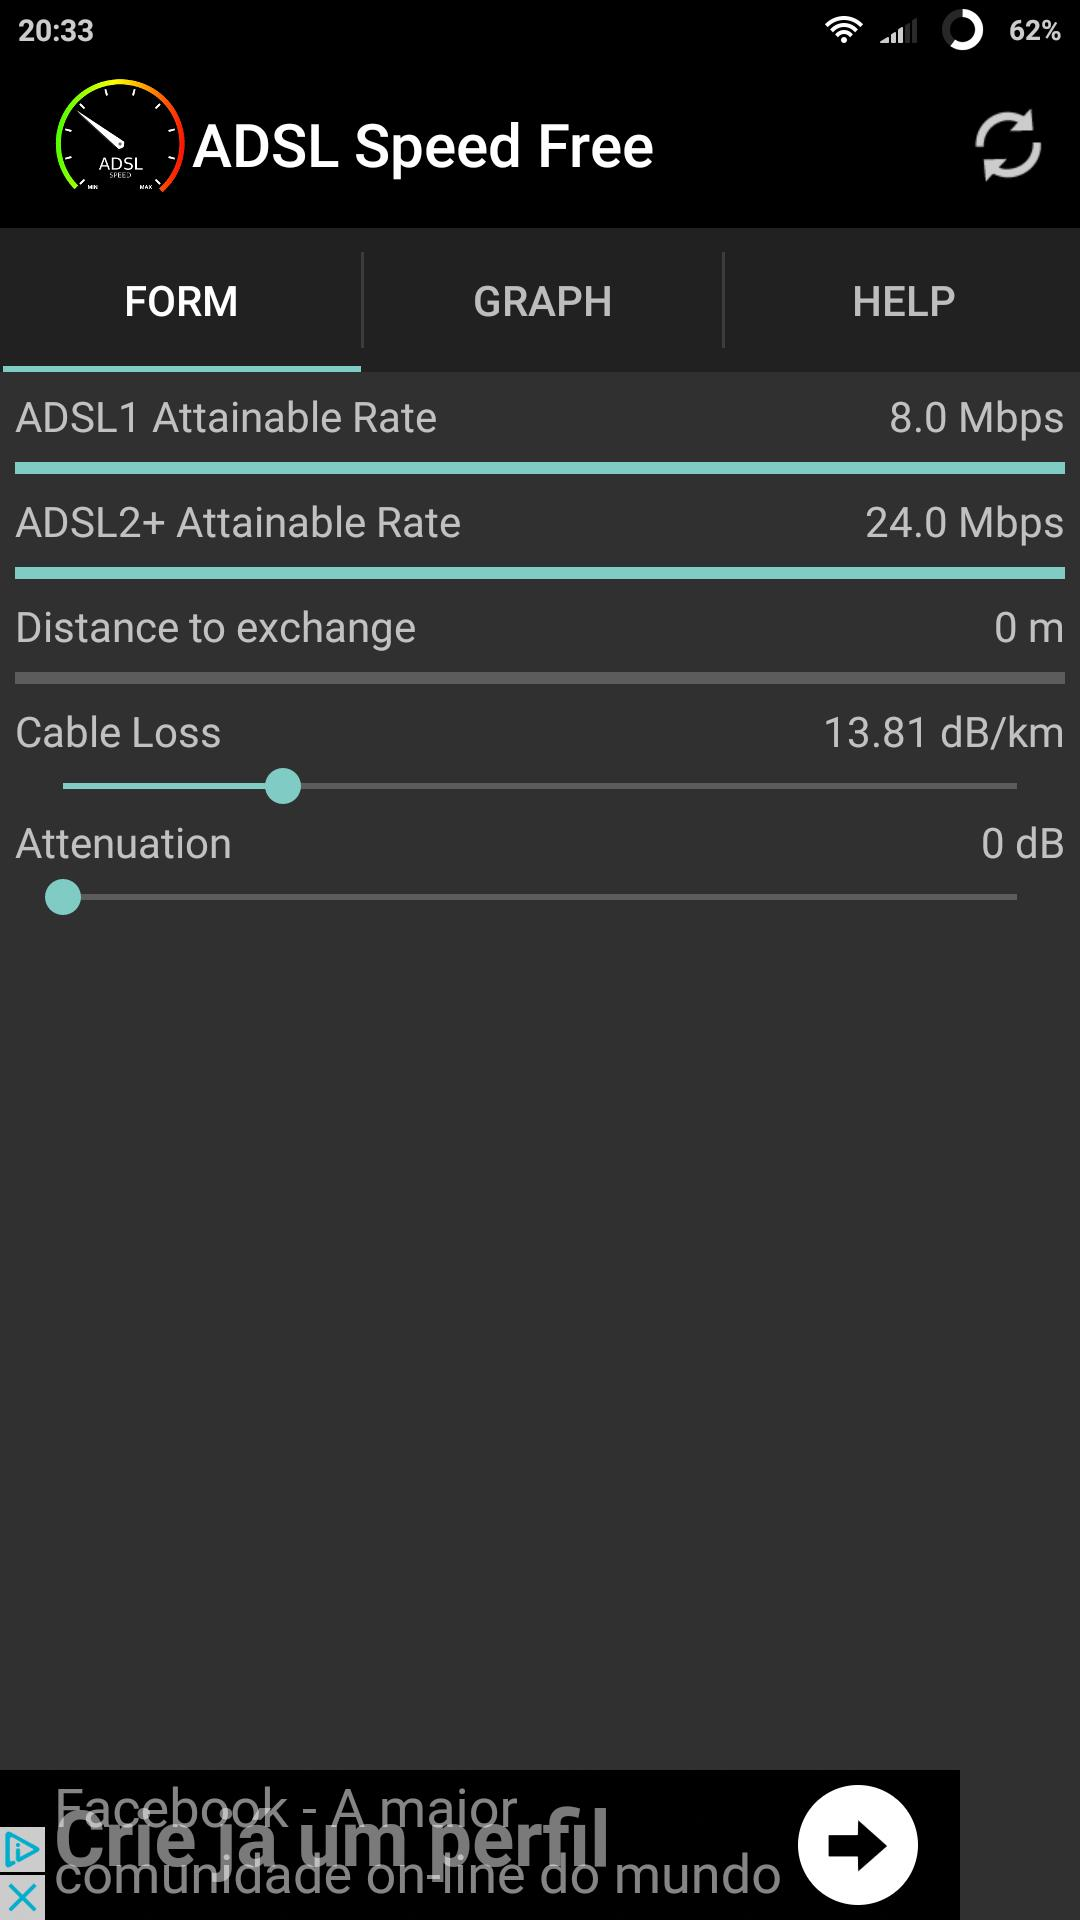 ADSL Speed Free for Android - APK Download